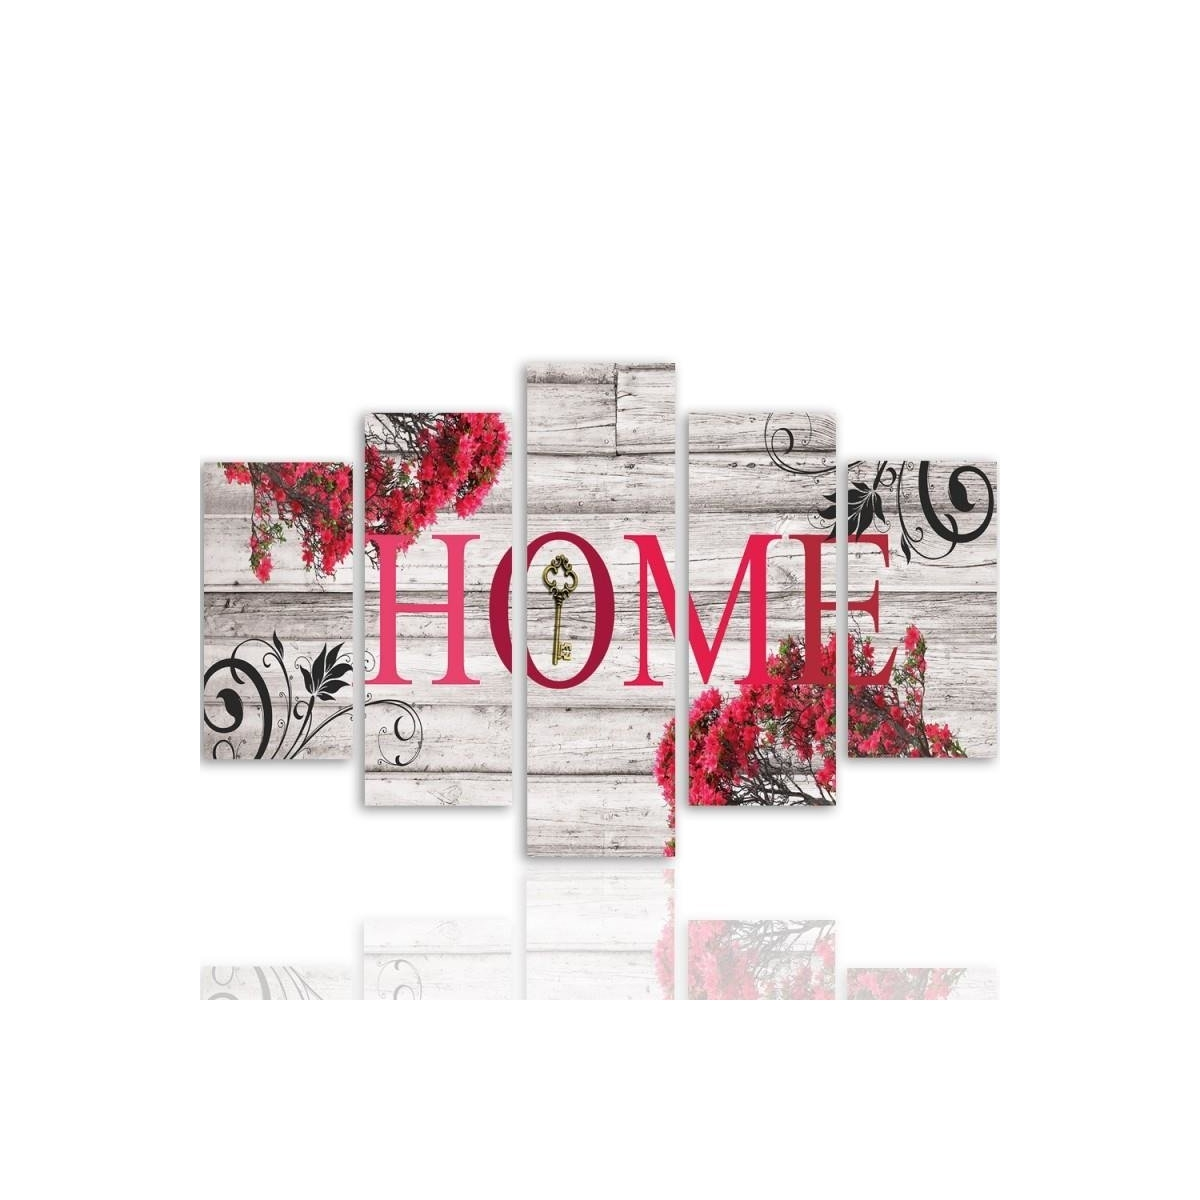 Five Part Picture On Canvas, Pentaptych, Type A, Inscription Home With Flowers 2100x150